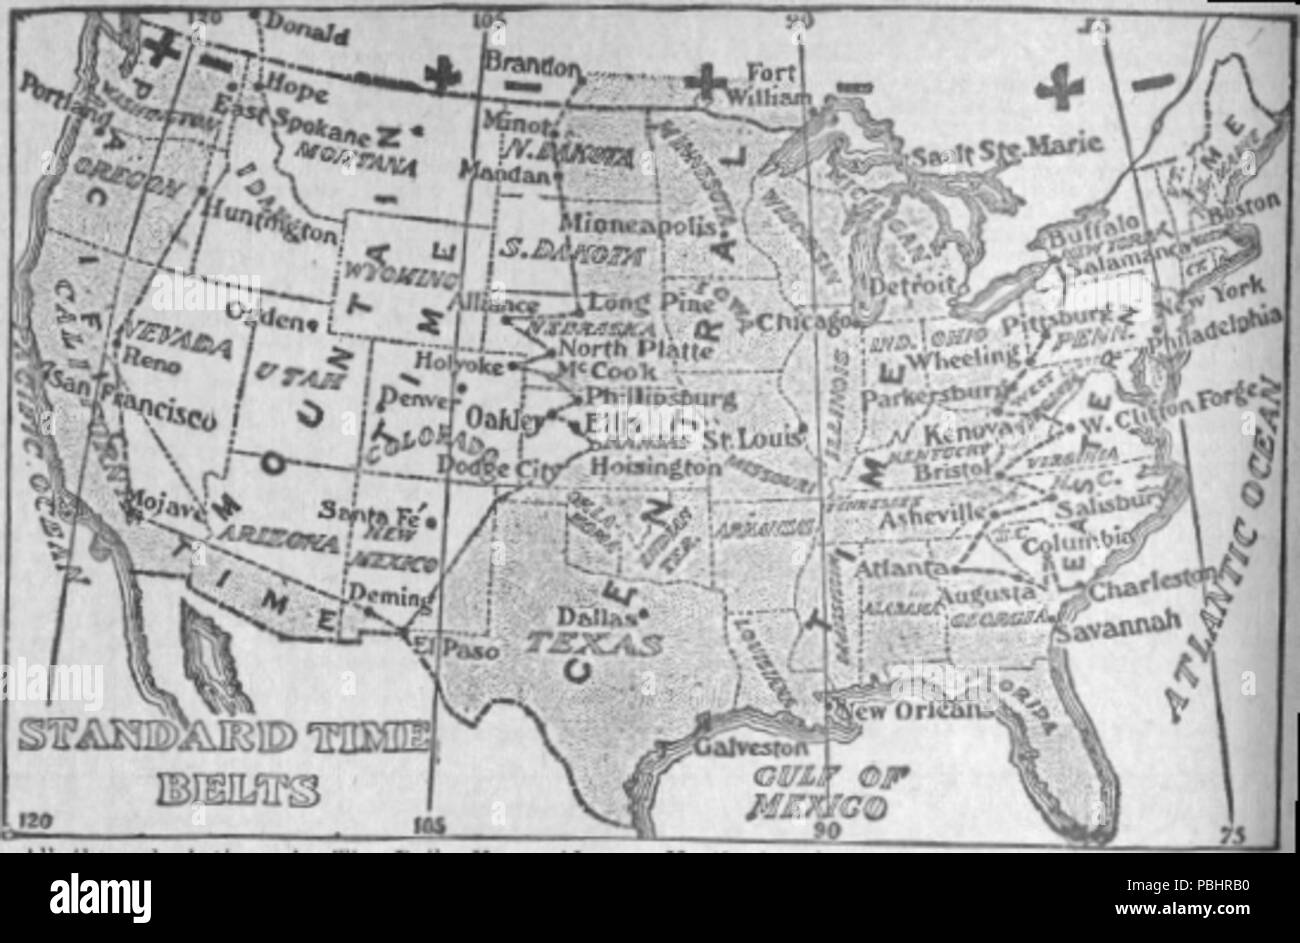 Time Zone Map United States Stock Photos & Time Zone Map ... United States Map And Time on civil war time map, indiana time map, canada time map, world time map, europe time map, earth time map, puerto rico time map, german time map, florida time map, international time map, israel time map, kentucky time map, guam time map, time zone map, local time map, christianity time map, romania time map, england time map, interstellar time map, peru time map,